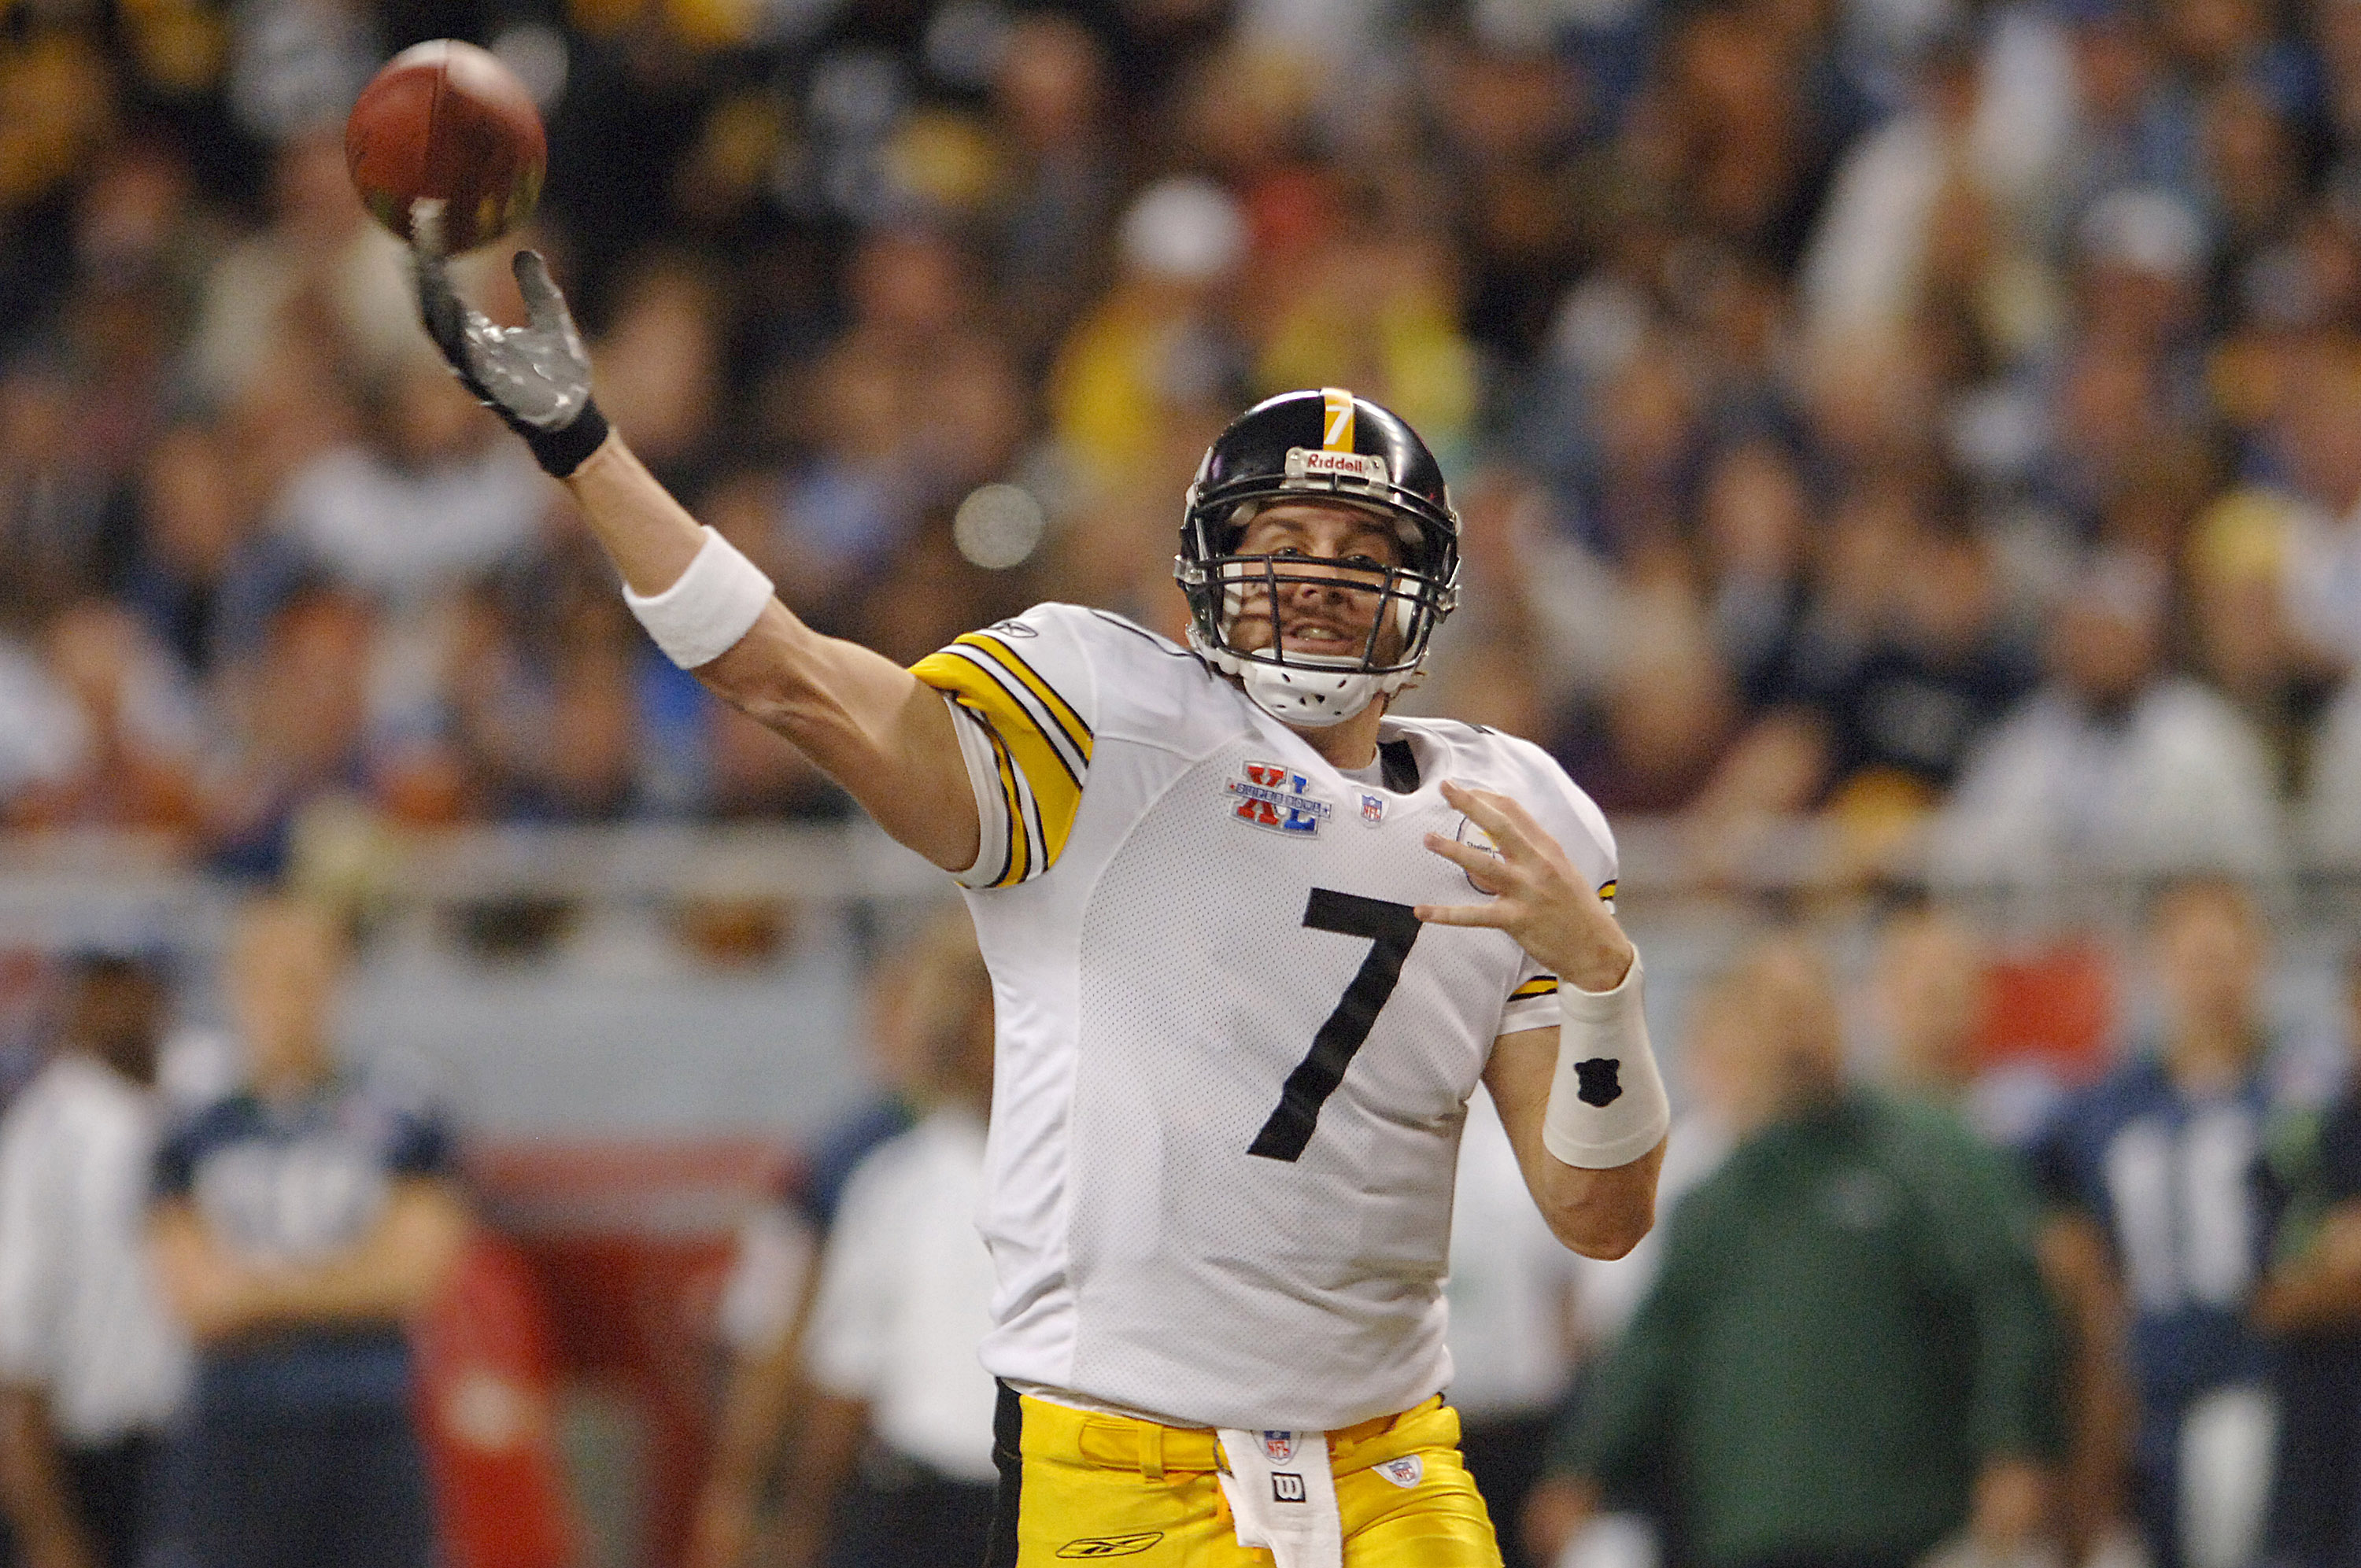 Steelers Ben Roethlisberger during Super Bowl XL between the Pittsburgh Steelers and Seattle Seahawks at Ford Field in Detroit, Michigan on February 5, 2006. (Photo by A. Messerschmidt/Getty Images)